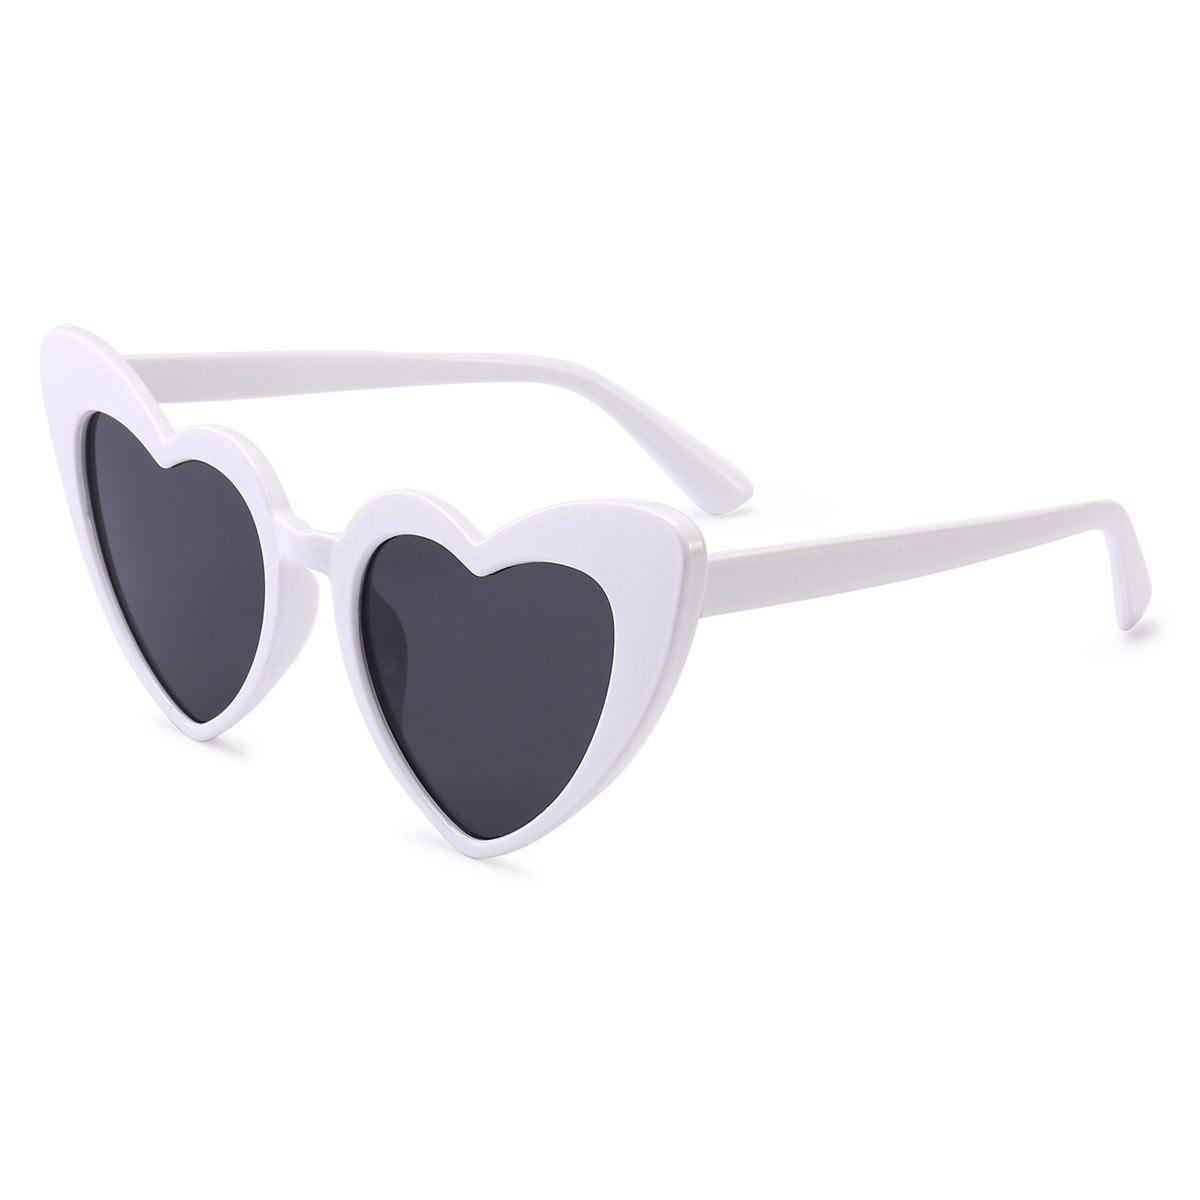 Heart Shape Full Frame Sunglasses - WHITE FRAME/GREY LENS